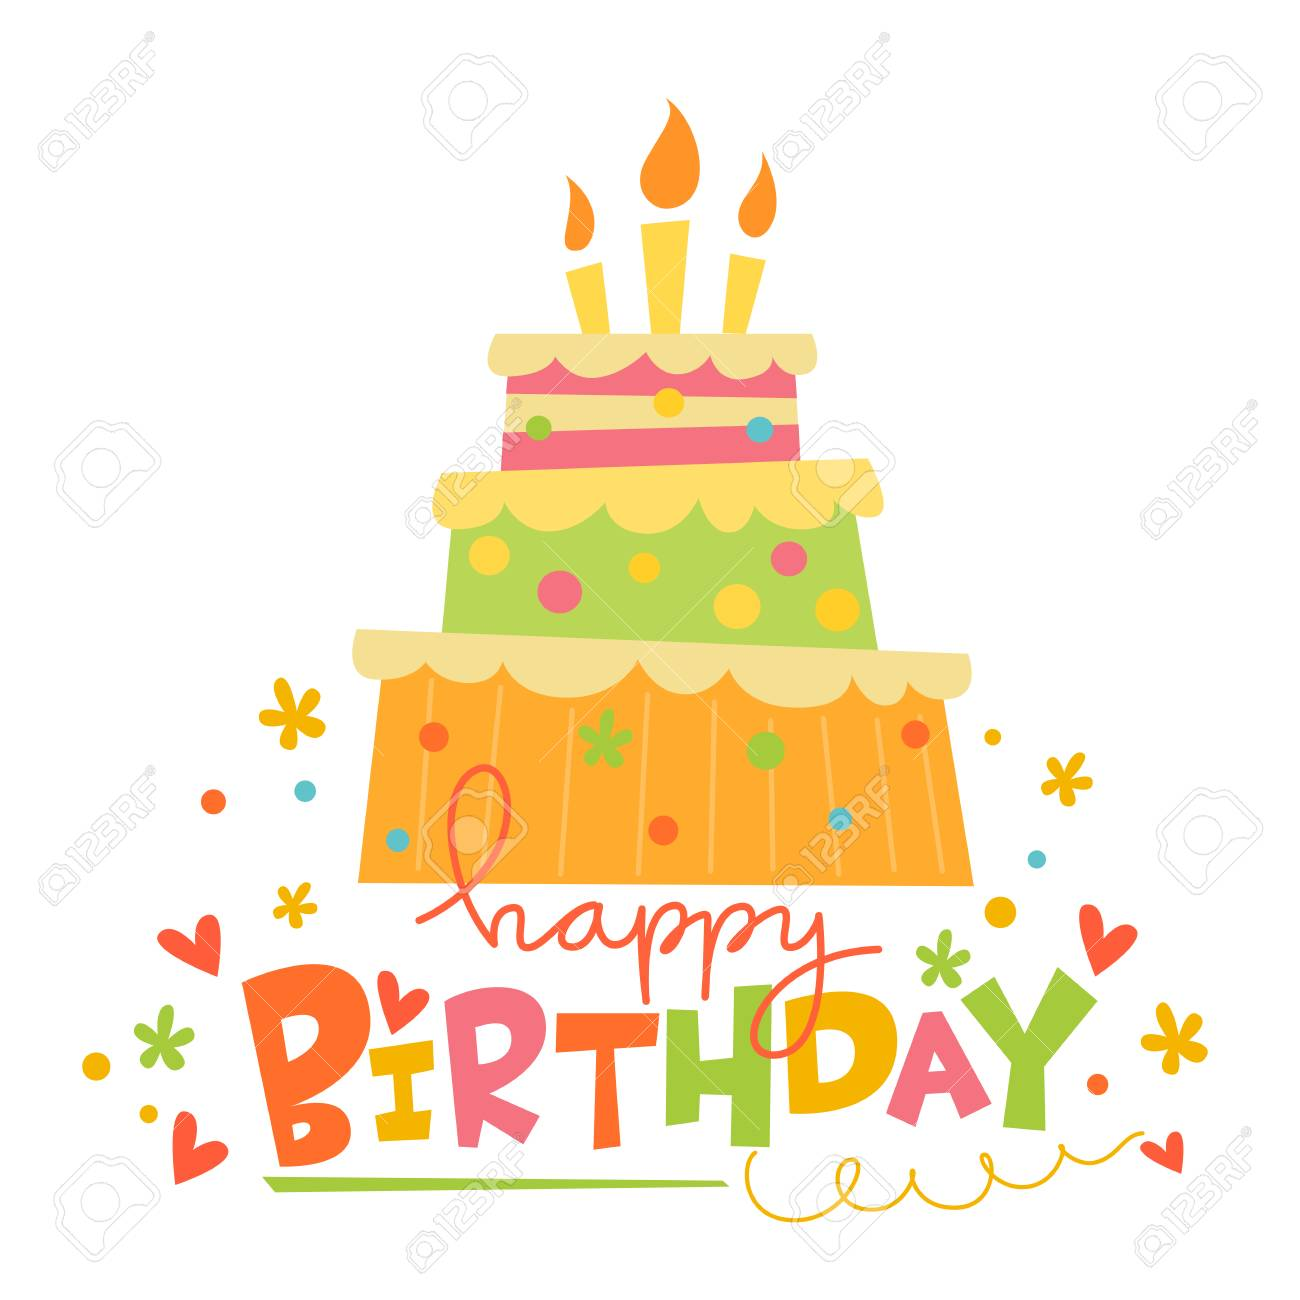 Vector Happy Birthday Card With Cute Cake Card With Sweets Royalty